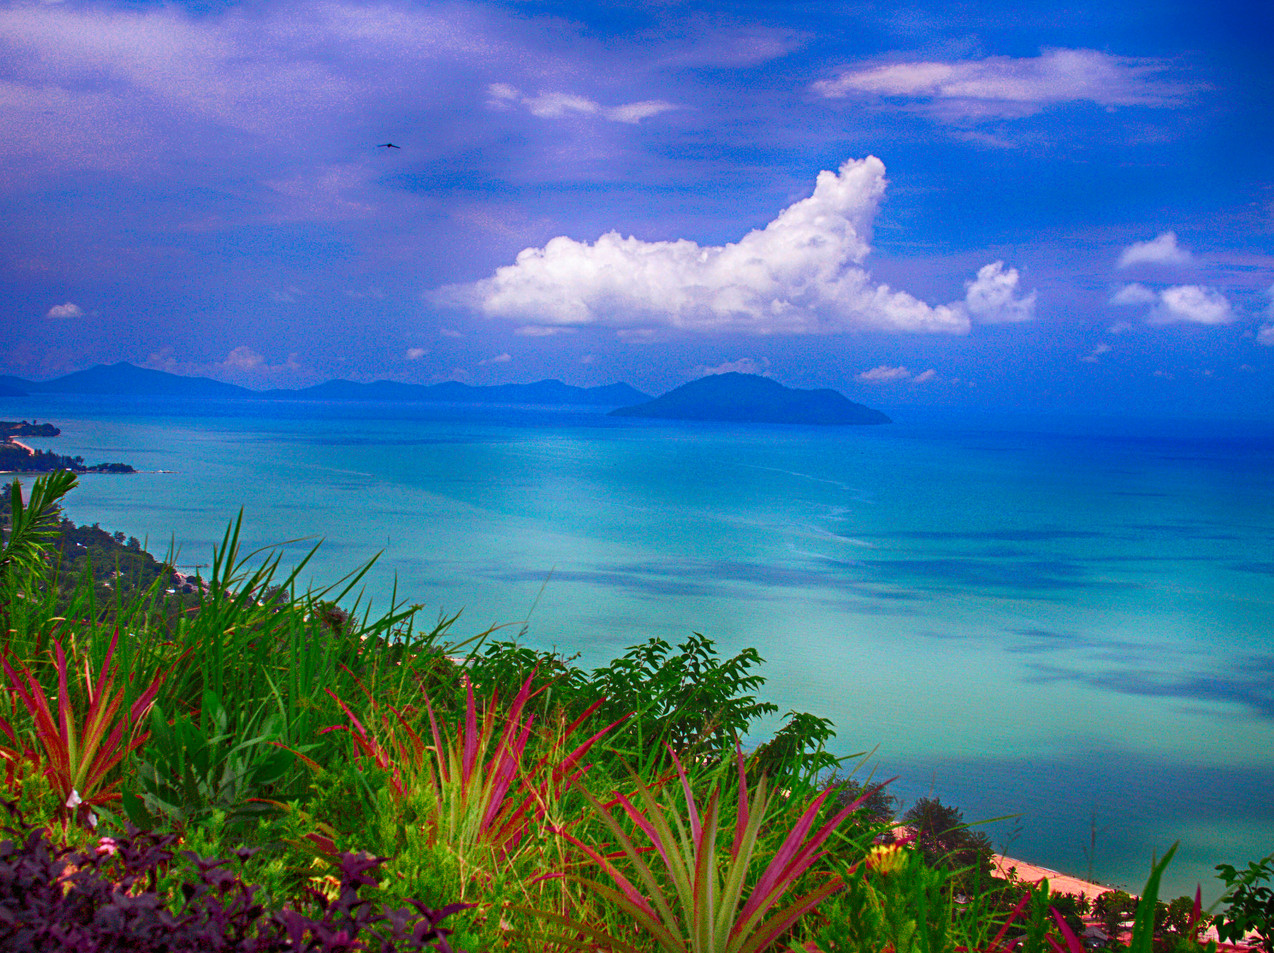 The Beauty Of The South China Sea